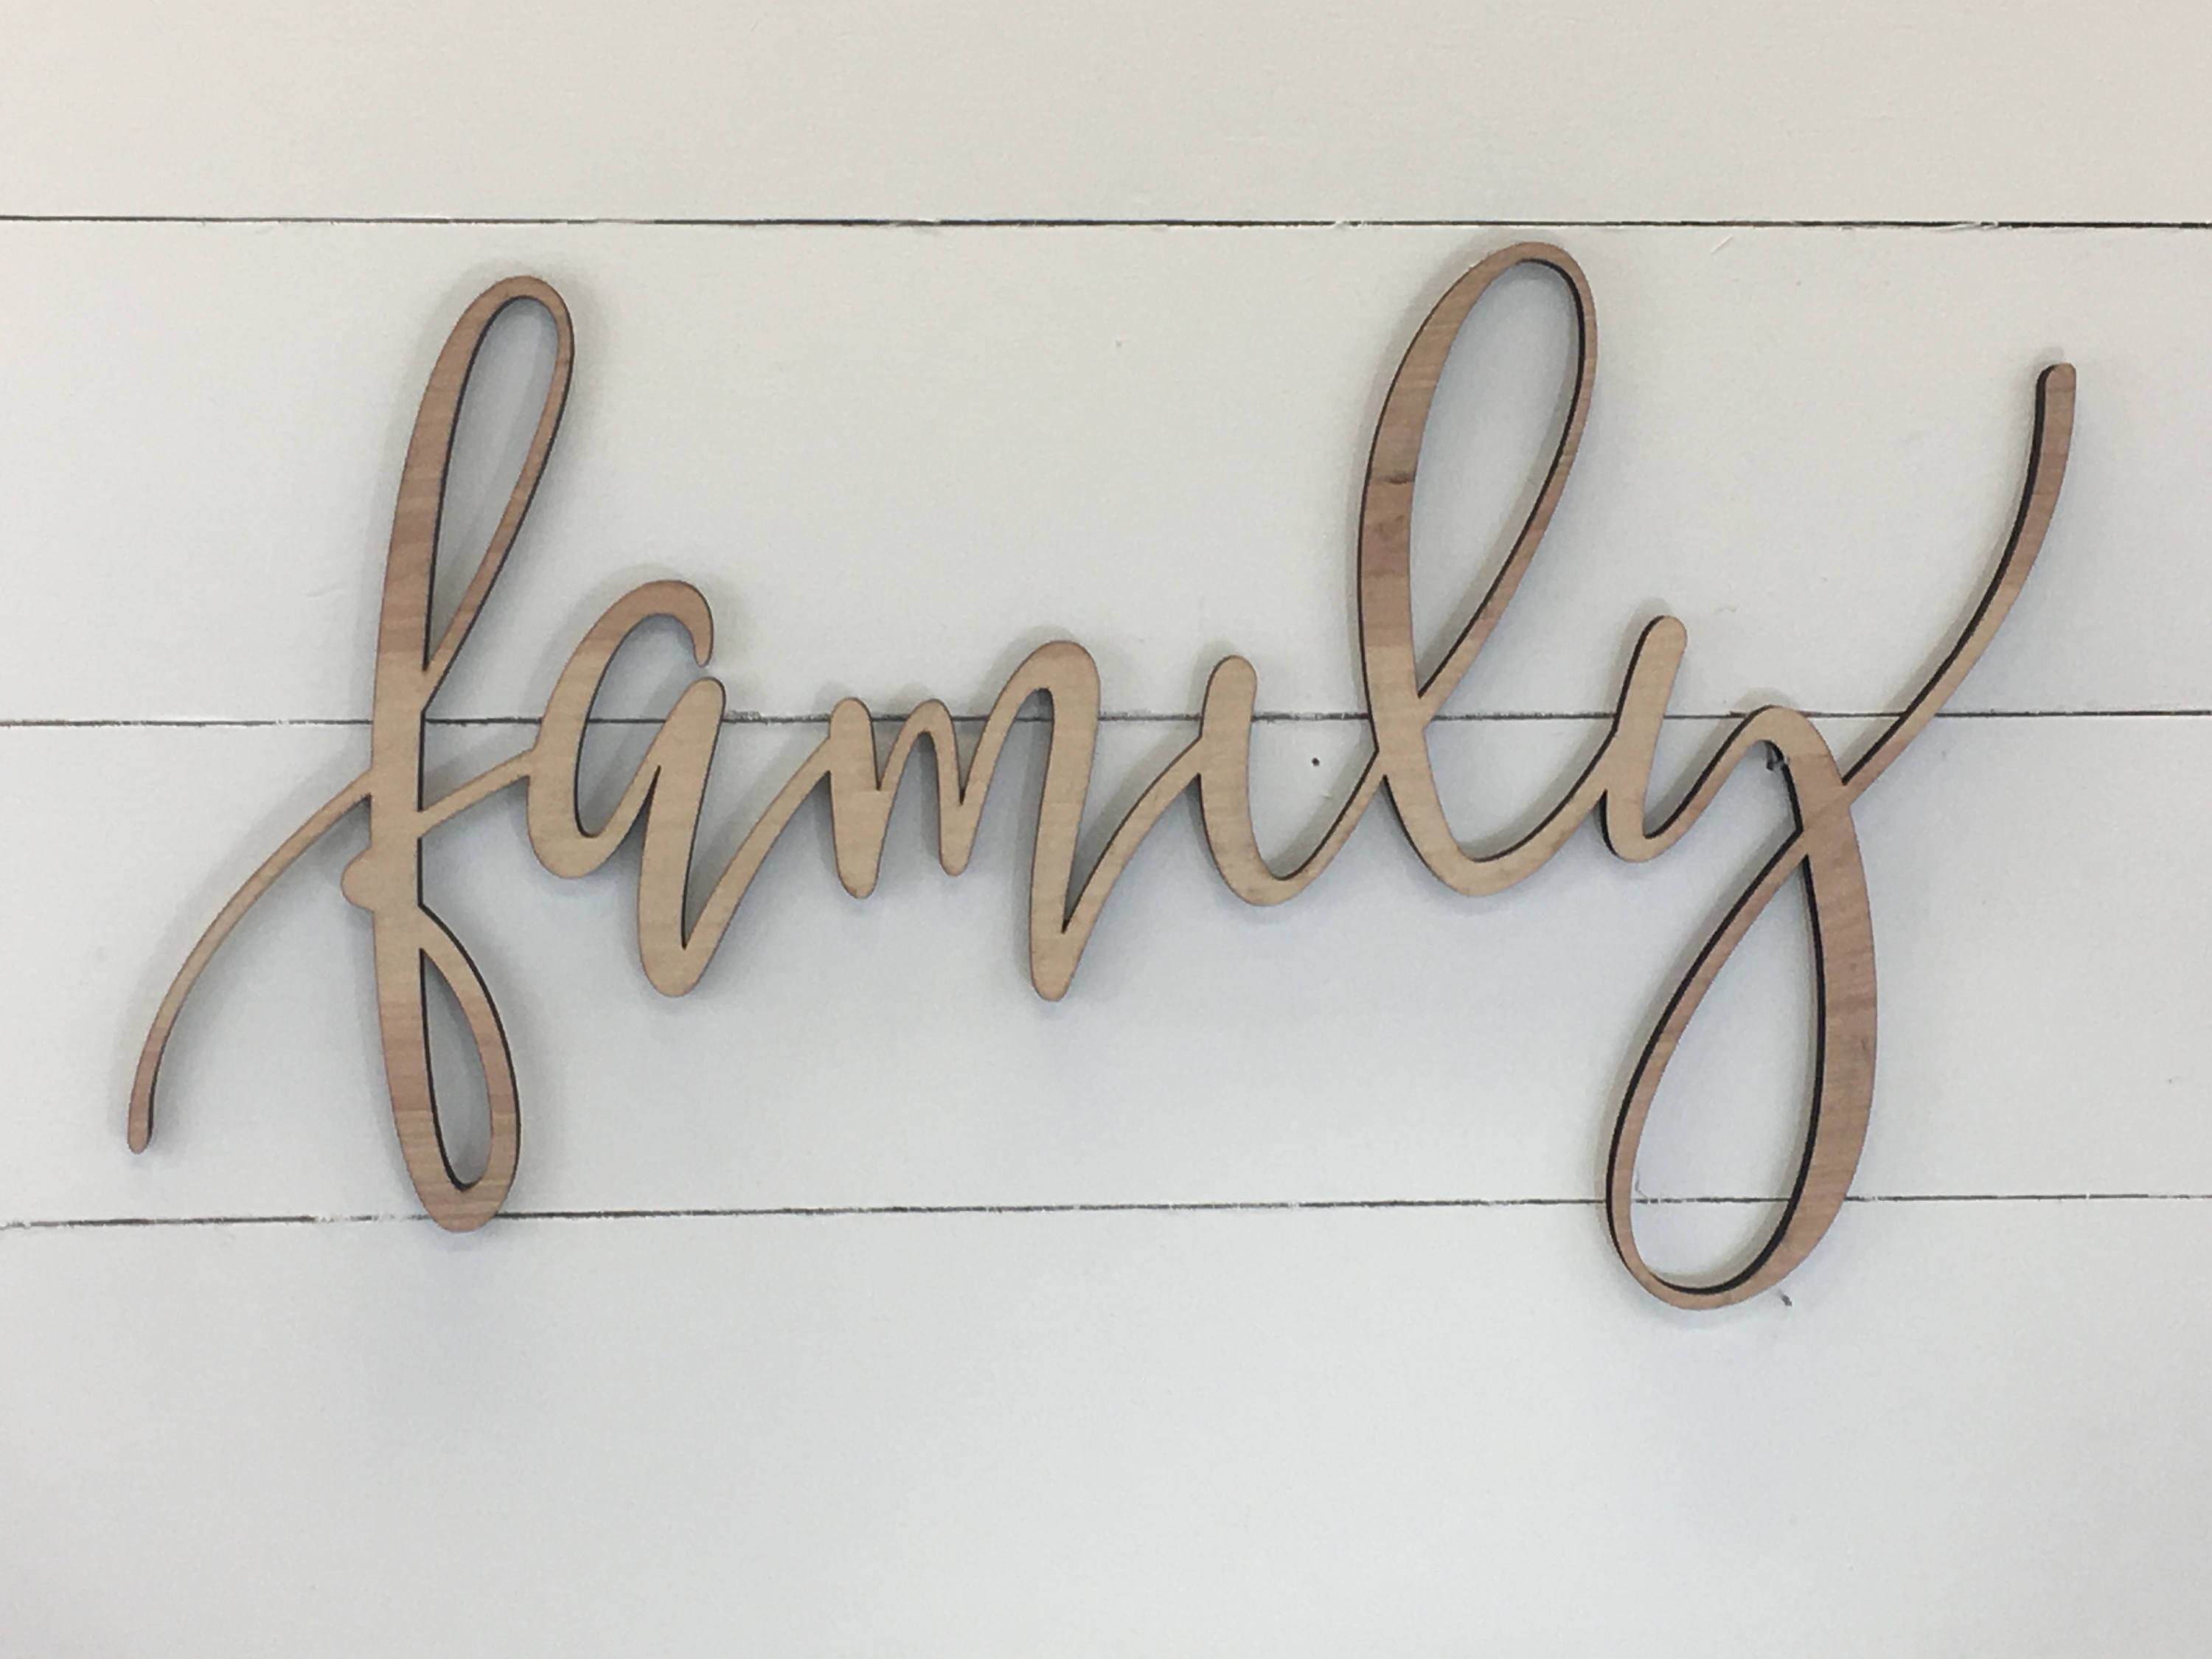 Items Similar To Just Smile Wooden Words Decorative Wood Letters With Newest Wooden Words Wall Art (View 13 of 30)